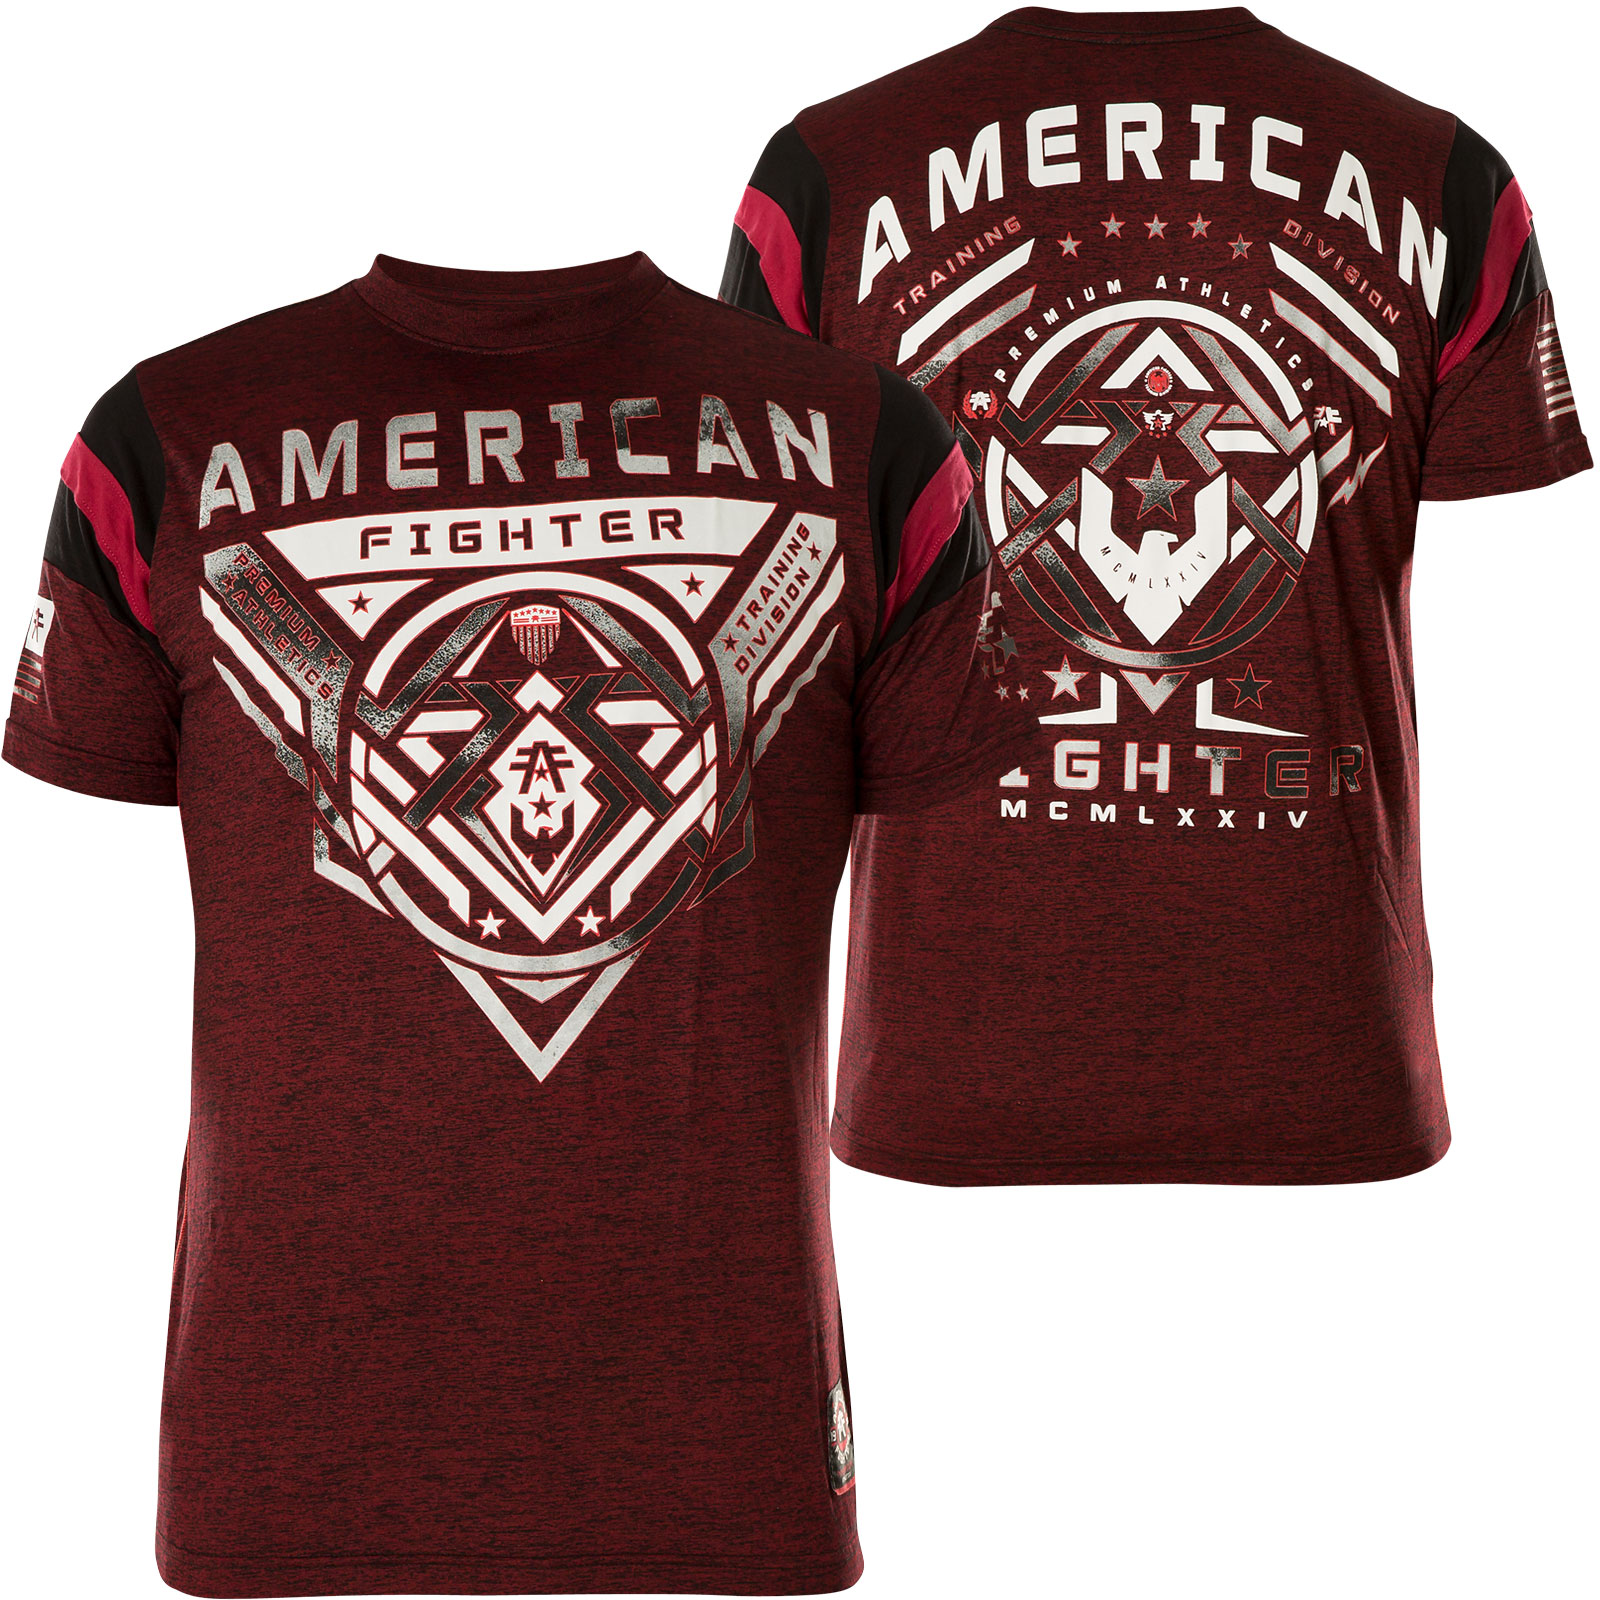 b243c673f American Fighter by Affliction T-Shirt with large print designs and ...